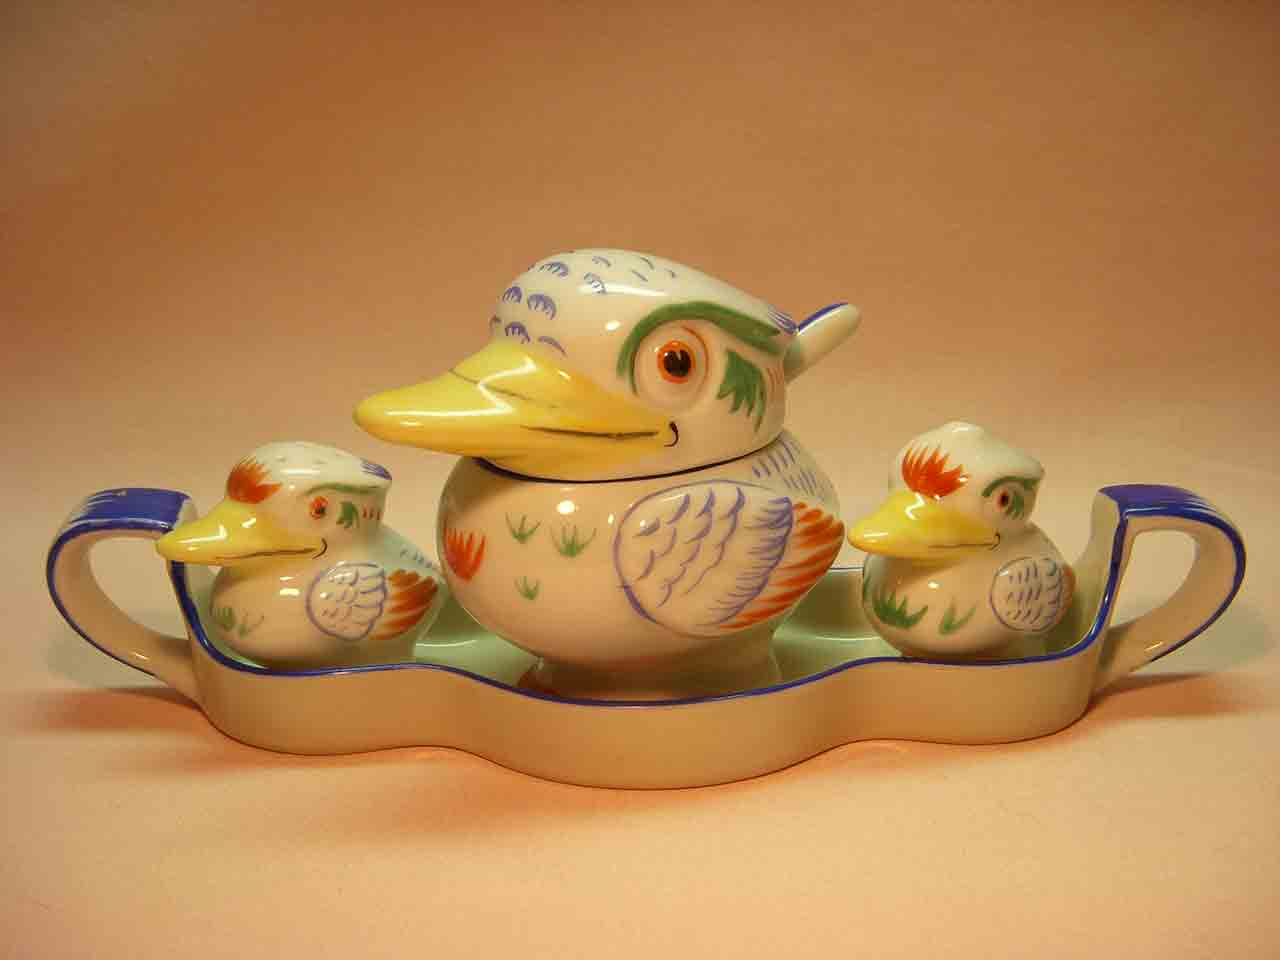 Water birds / ducks Noritake salt and pepper shakers and condiment set